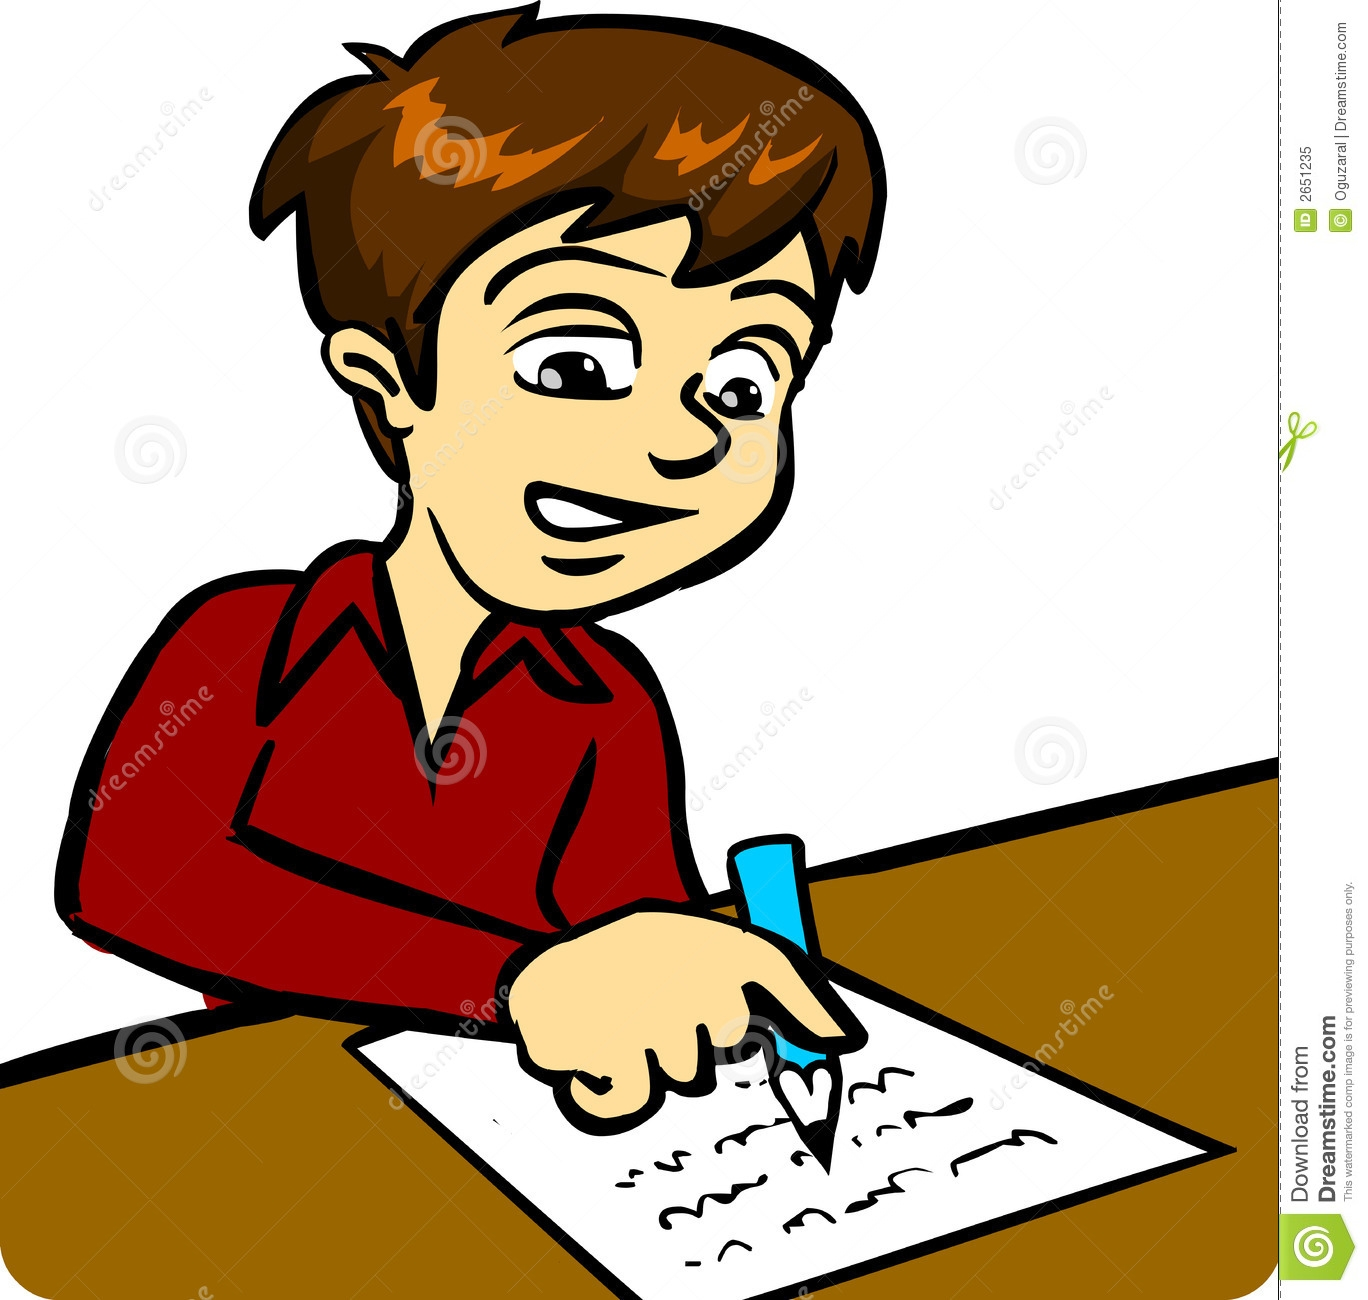 Free Writing Letters Cliparts, Download Free Clip Art, Free Clip Art.